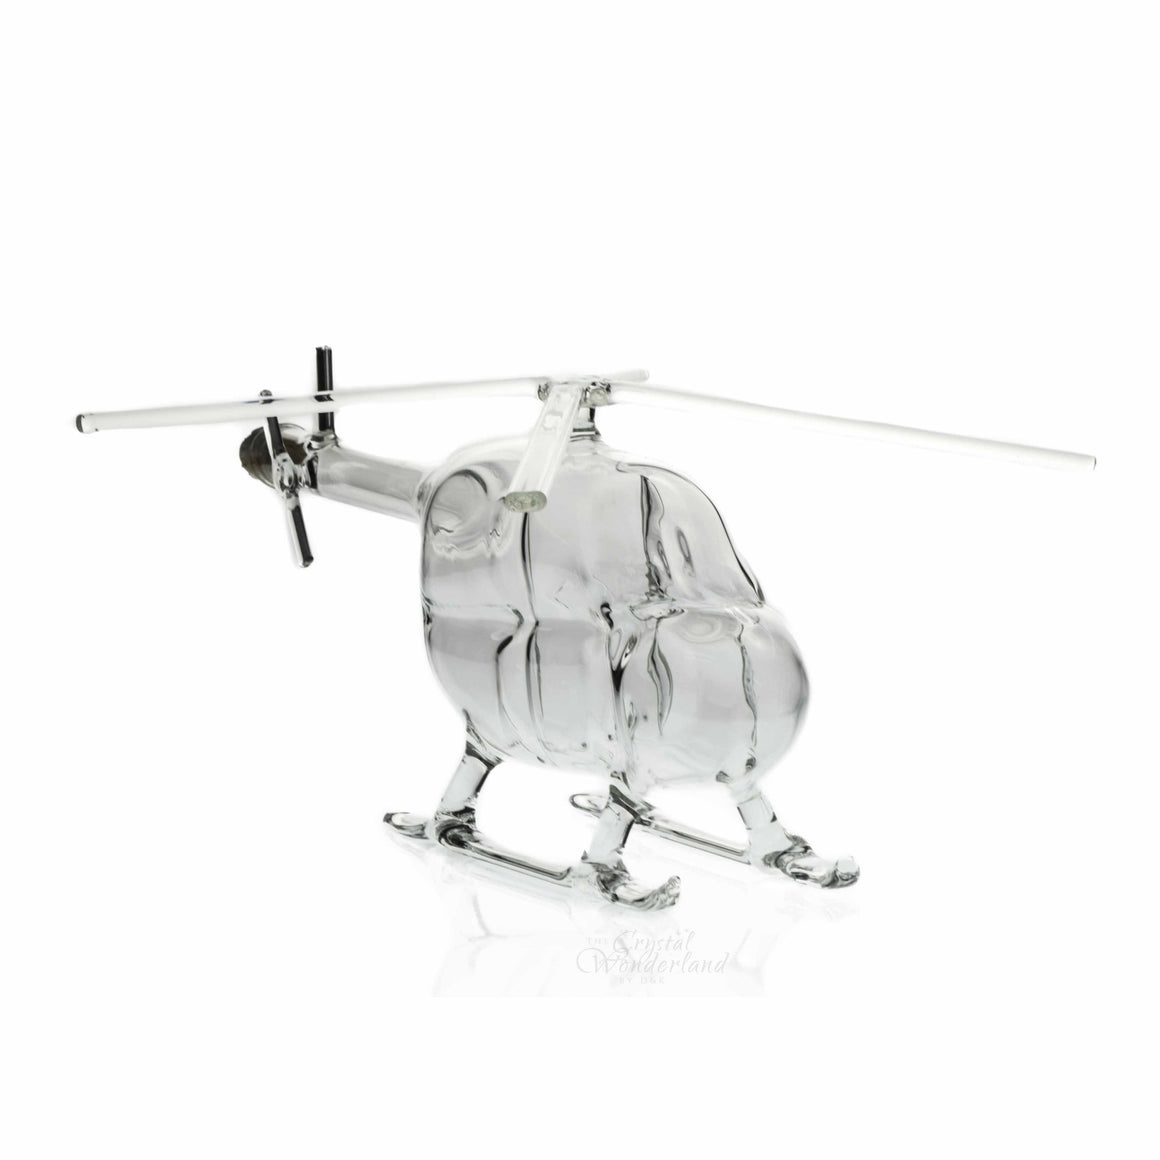 Glass Handmade Helicopter Bottle - The Crystal Wonderland